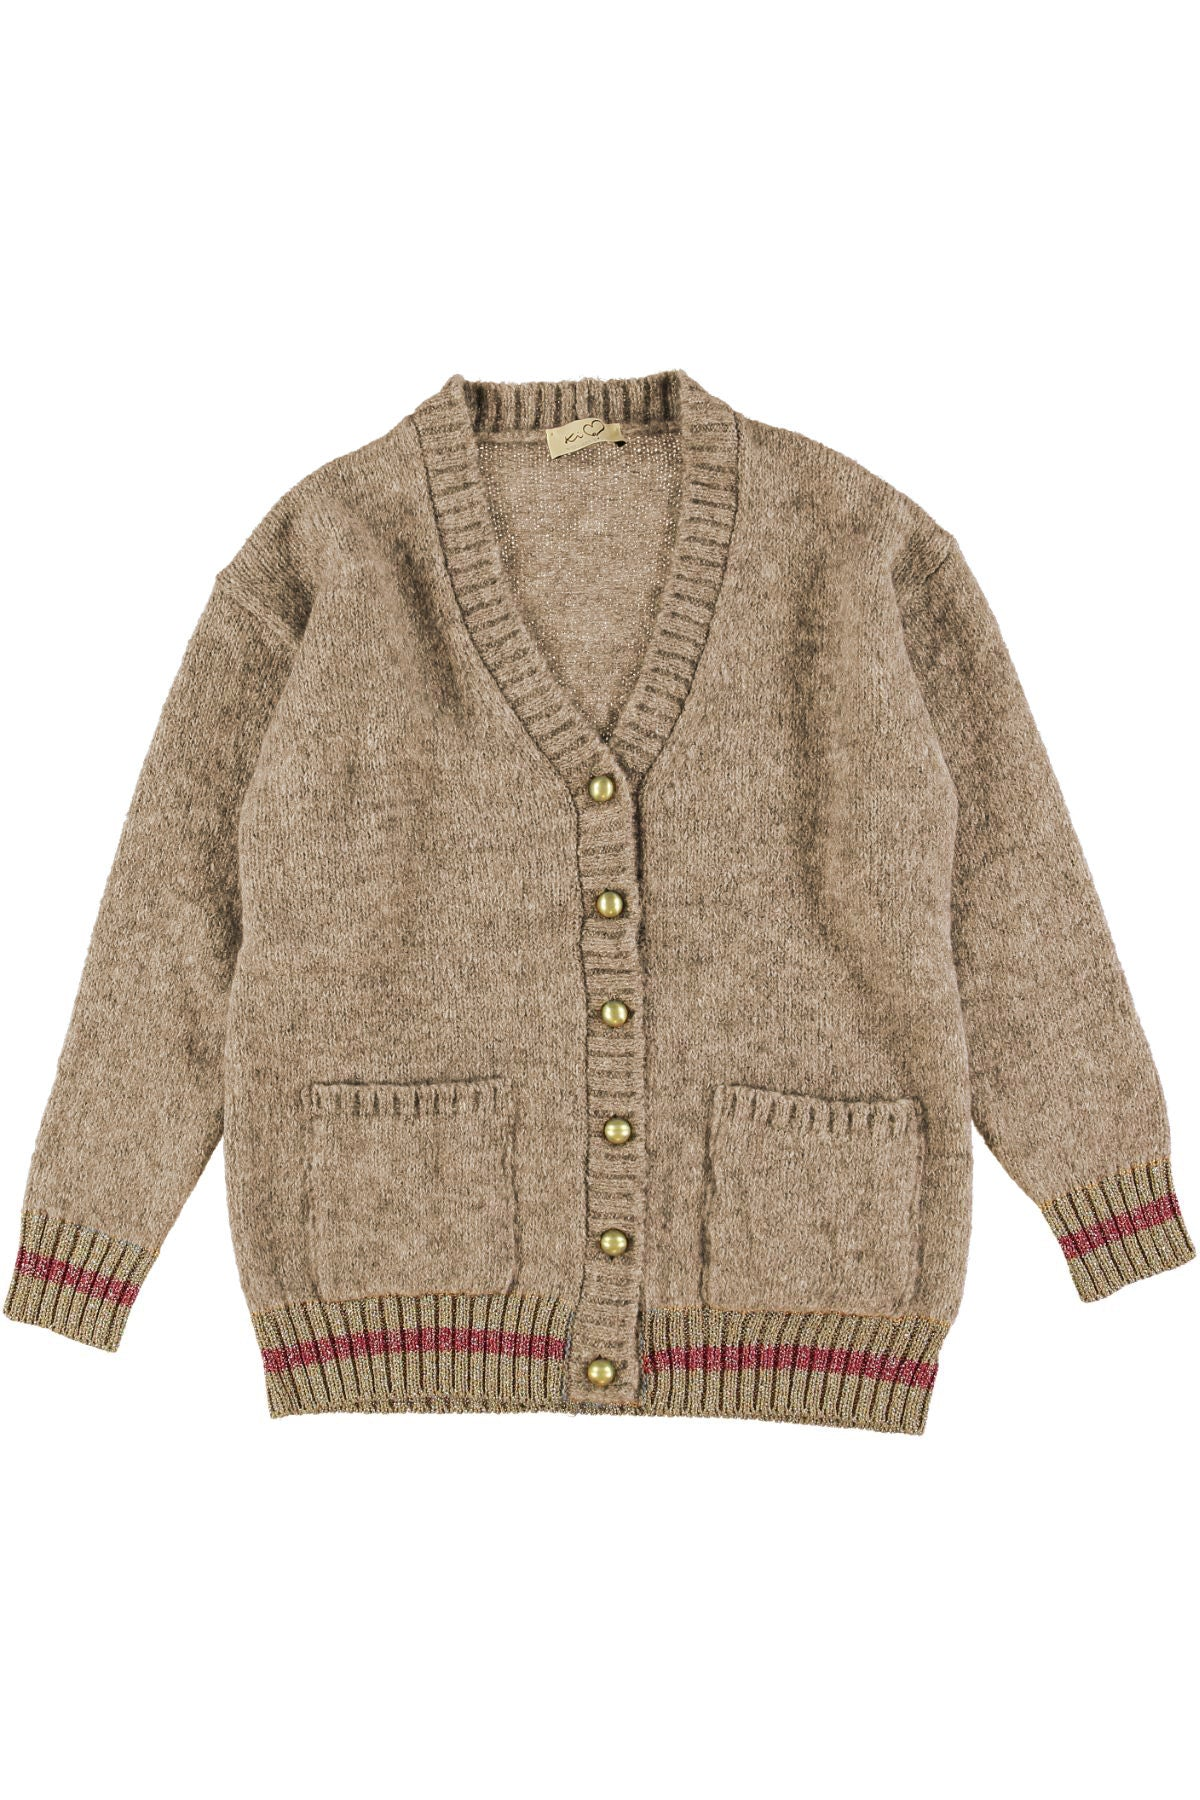 cardigan_cammello_RMG15_front-ki6_who_are_you